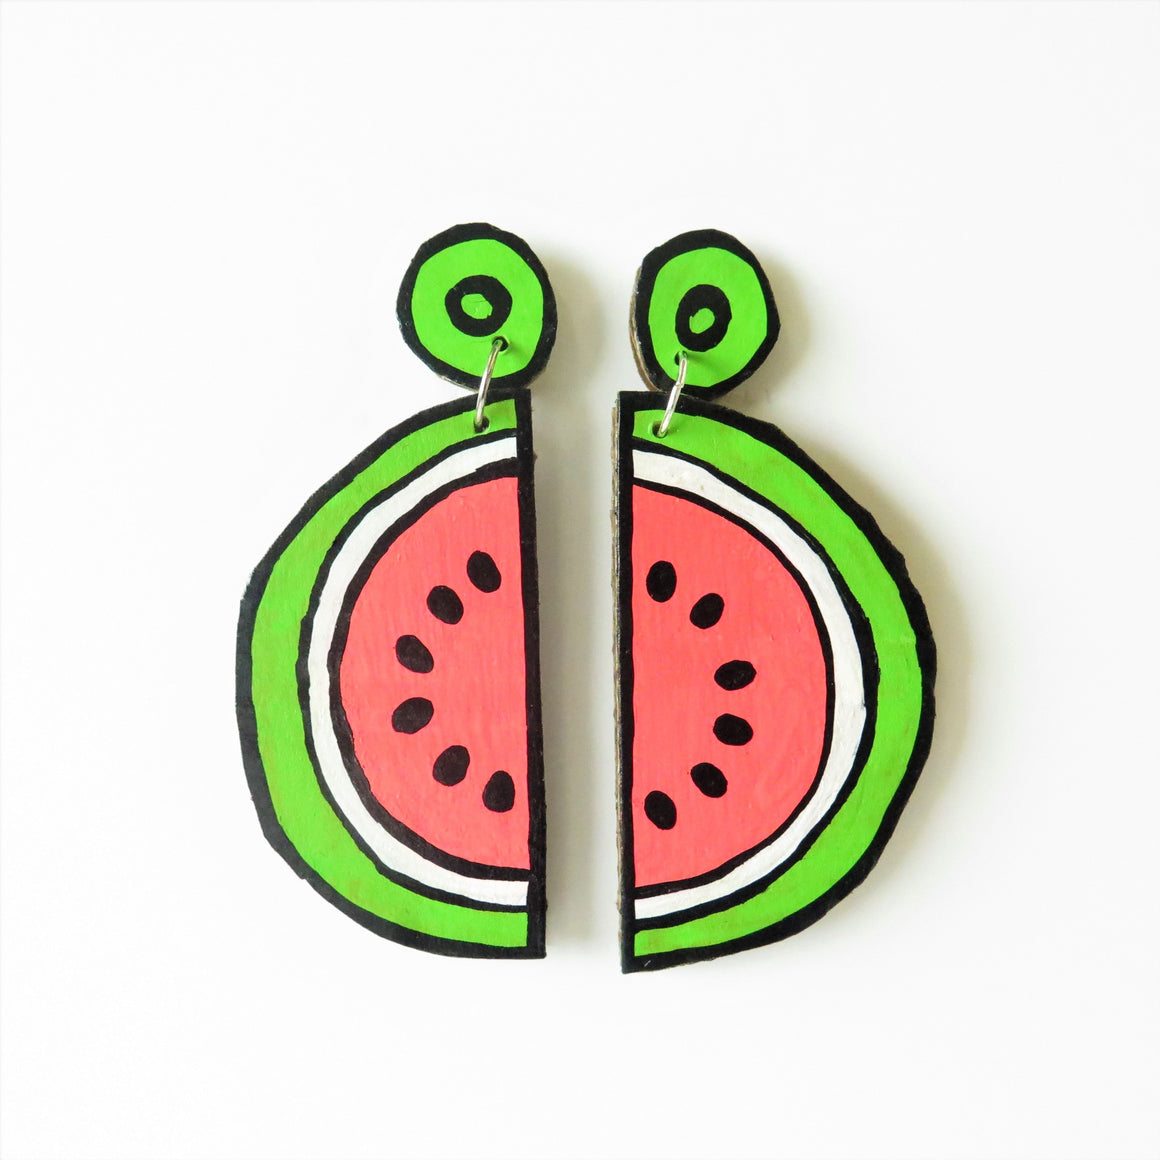 Earrings Watermelon Cardboard